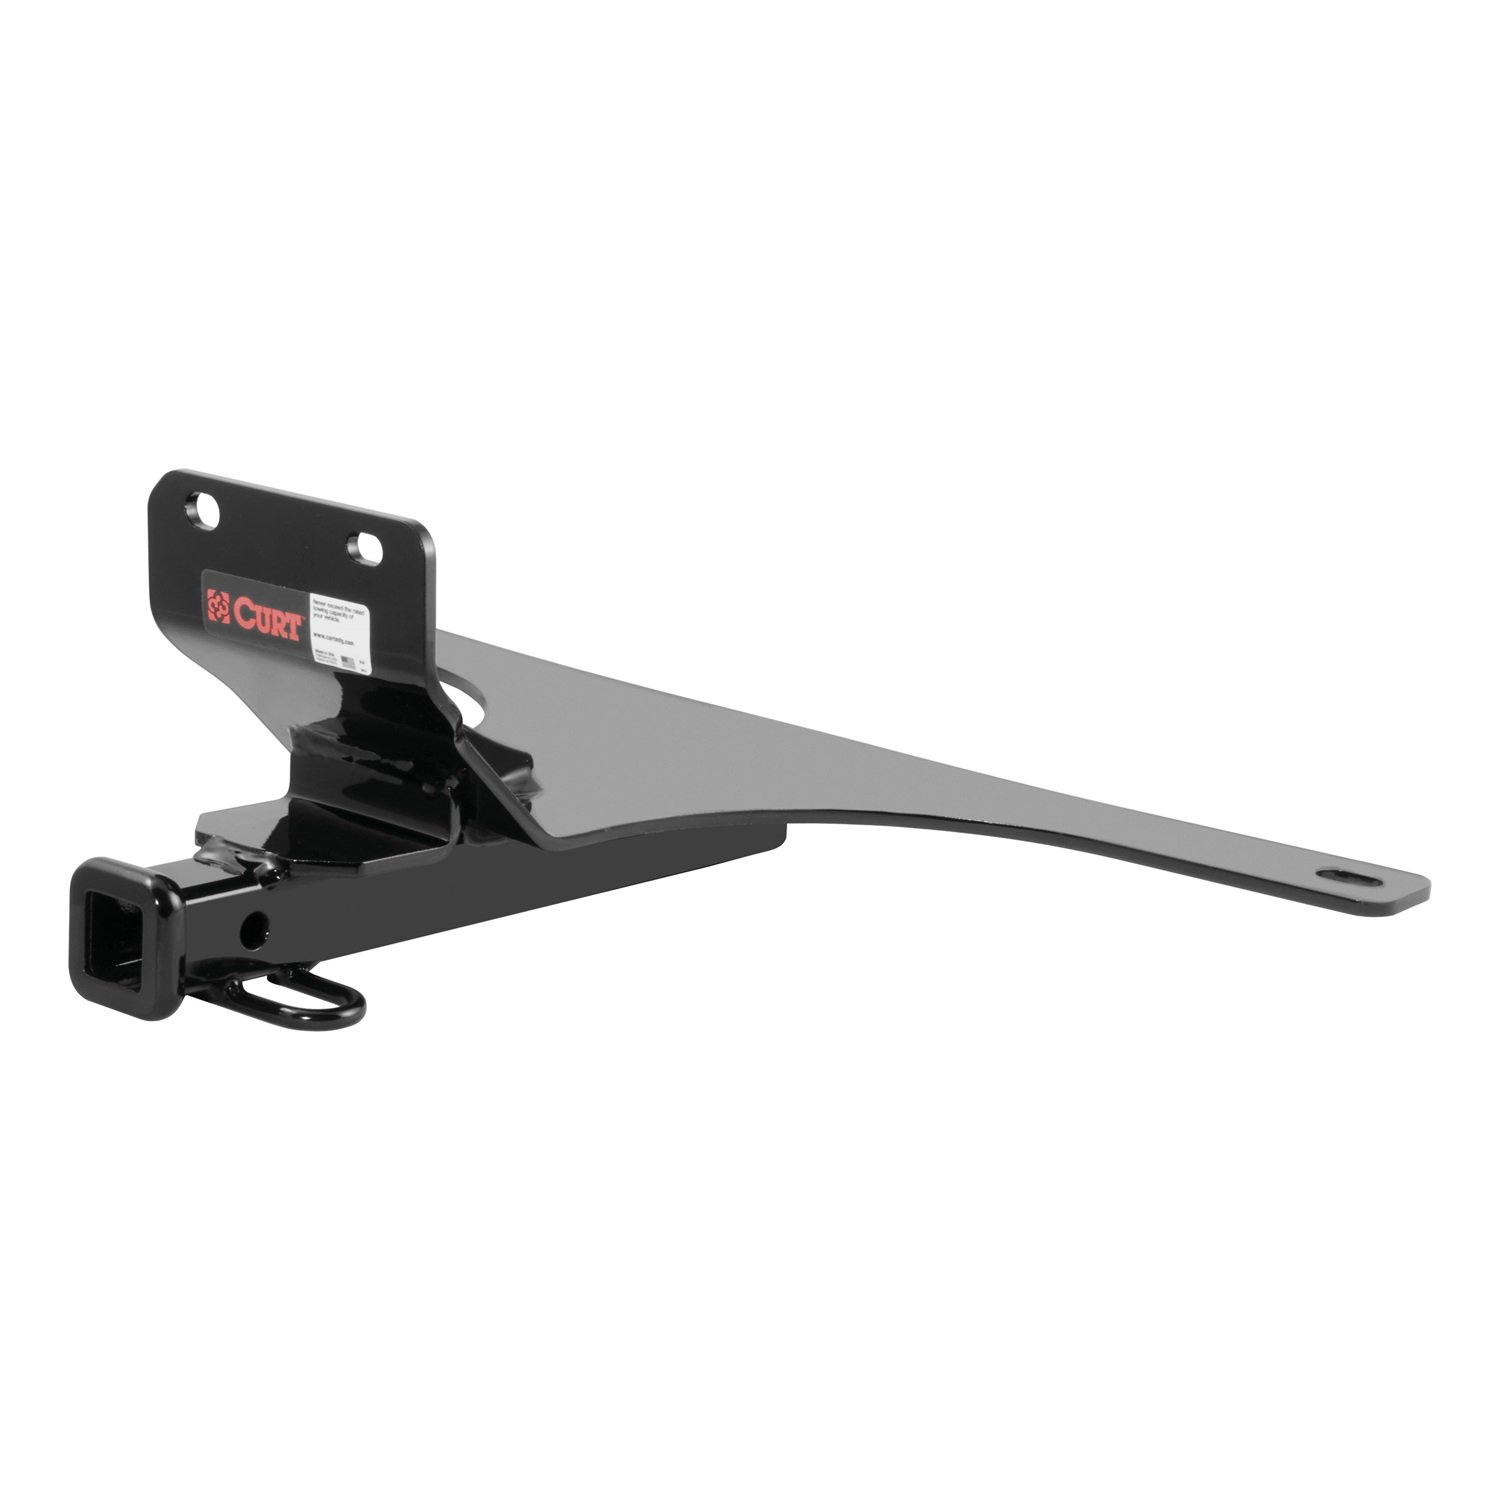 Curt Manufacturing 11140 1-1//4 Class 1 Trailer Hitch Receiver for 2006-2011 Saab 9-3 Sport Combi Wagon with Dual Exhaust